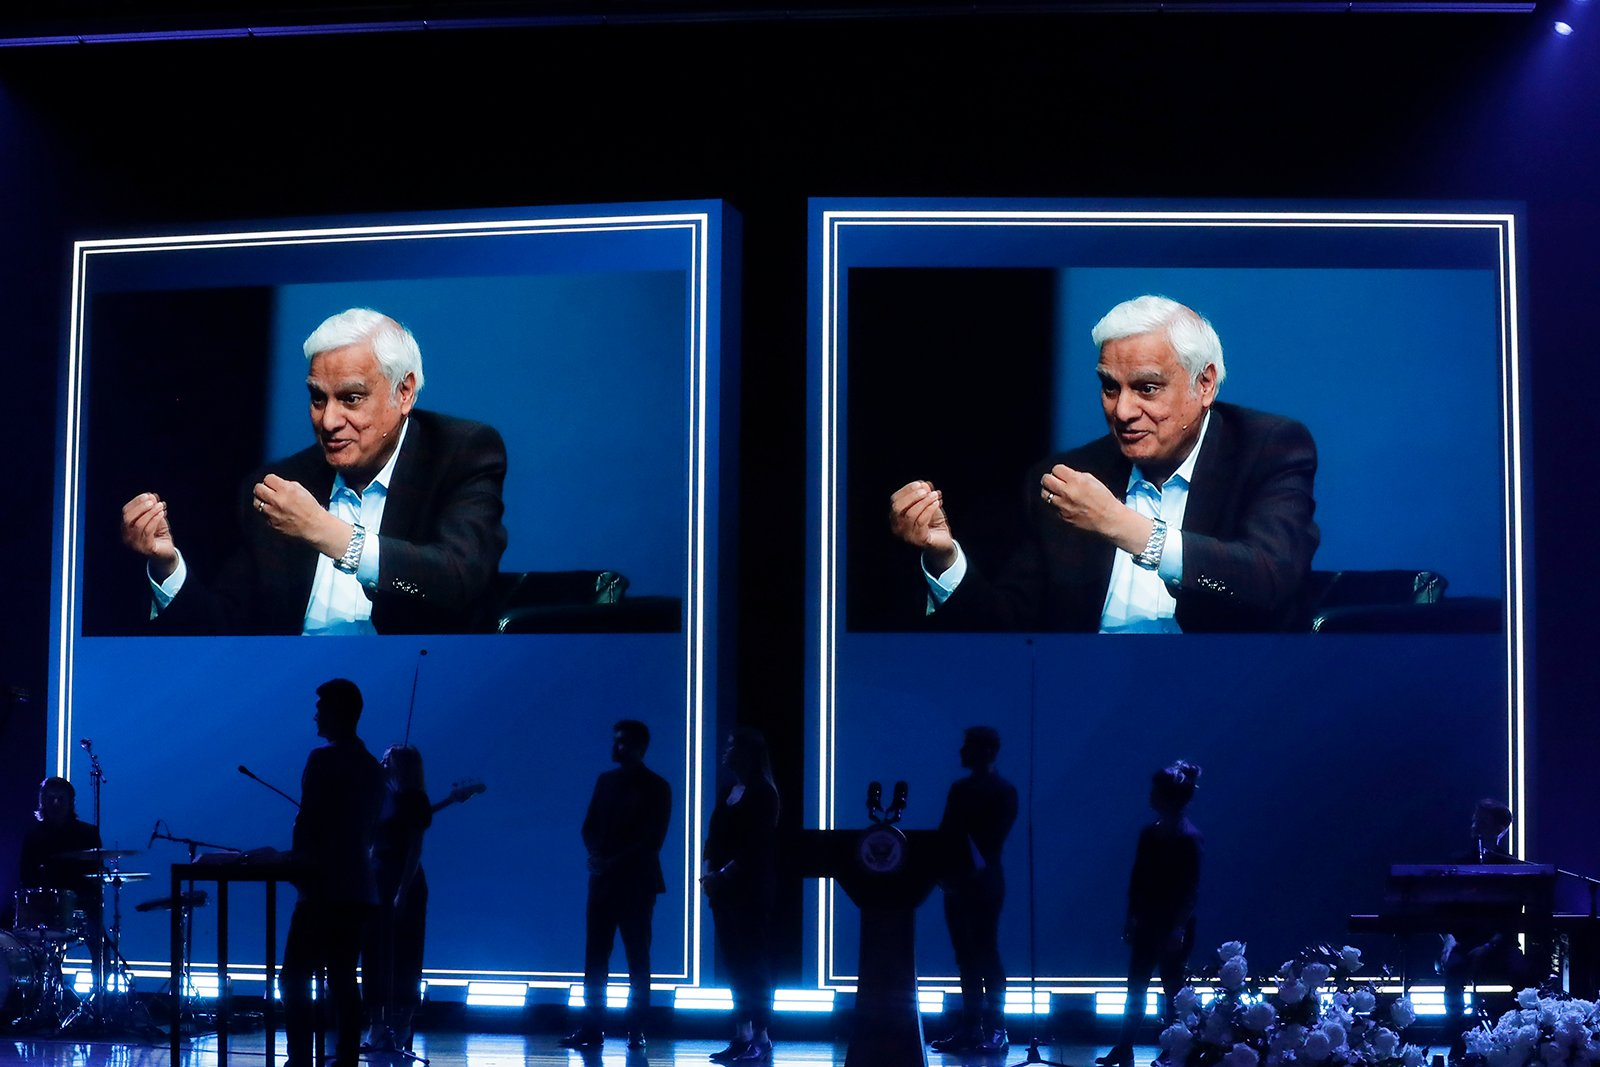 In this May 29, 2020, file photo, images of Ravi Zacharias are displayed in the Passion City Church during a memorial service for him in Atlanta. A posthumous sex scandal involving Zacharias, who founded the Ravi Zacharias International Ministries, has placed the global organization in a wrenching predicament. (AP Photo/Brynn Anderson, File)